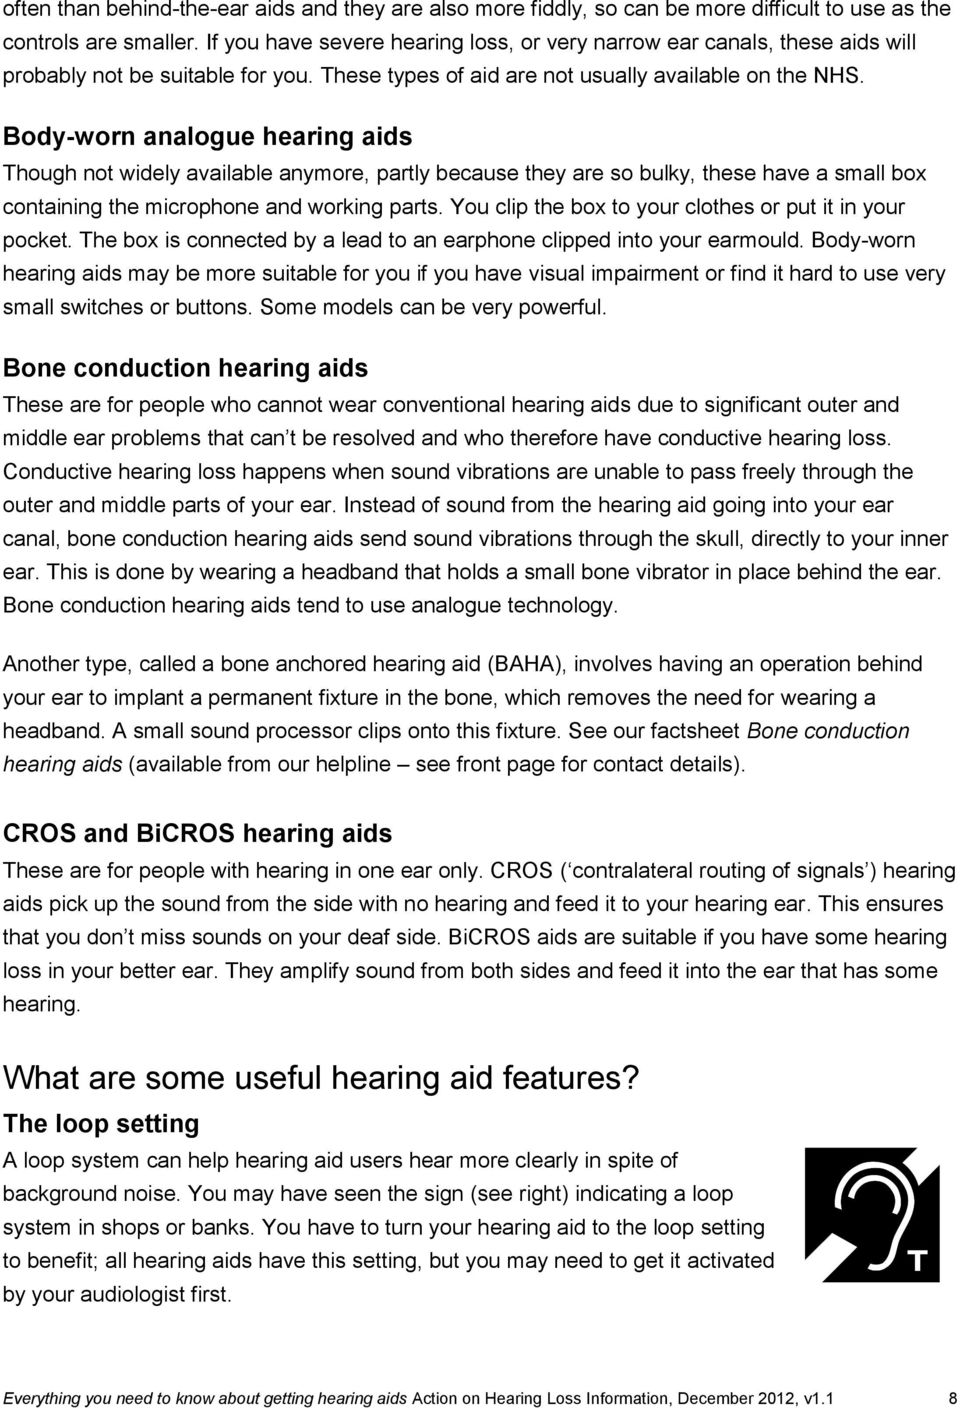 Body-worn analogue hearing aids Though not widely available anymore, partly because they are so bulky, these have a small box containing the microphone and working parts.